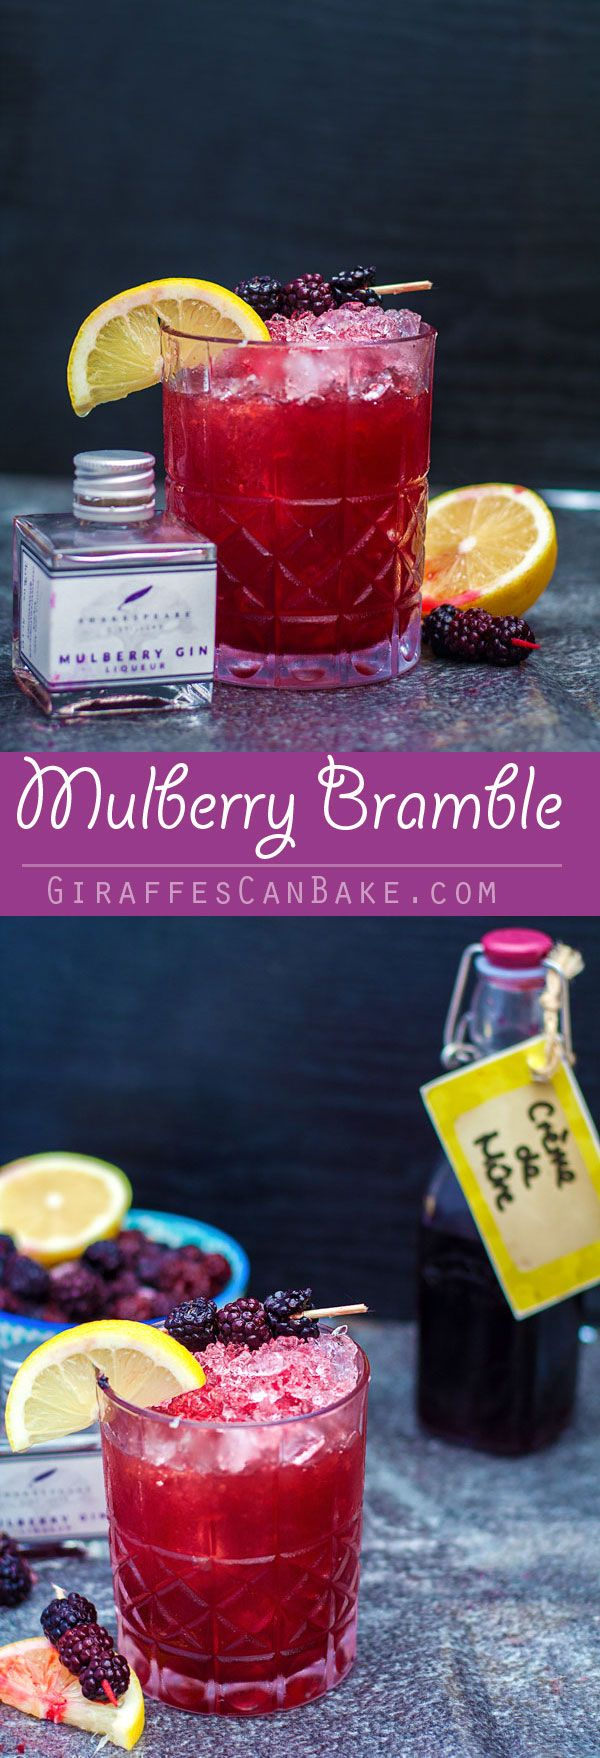 The Mulberry Bramble Cocktail is full of amazing flavours and stunning colours. Made with mulberry gin, lemon juice, and blackberry liqueur, it's really easy to mix, making it the perfect cocktail to serve at any occasion. It is fully of early autumn flav